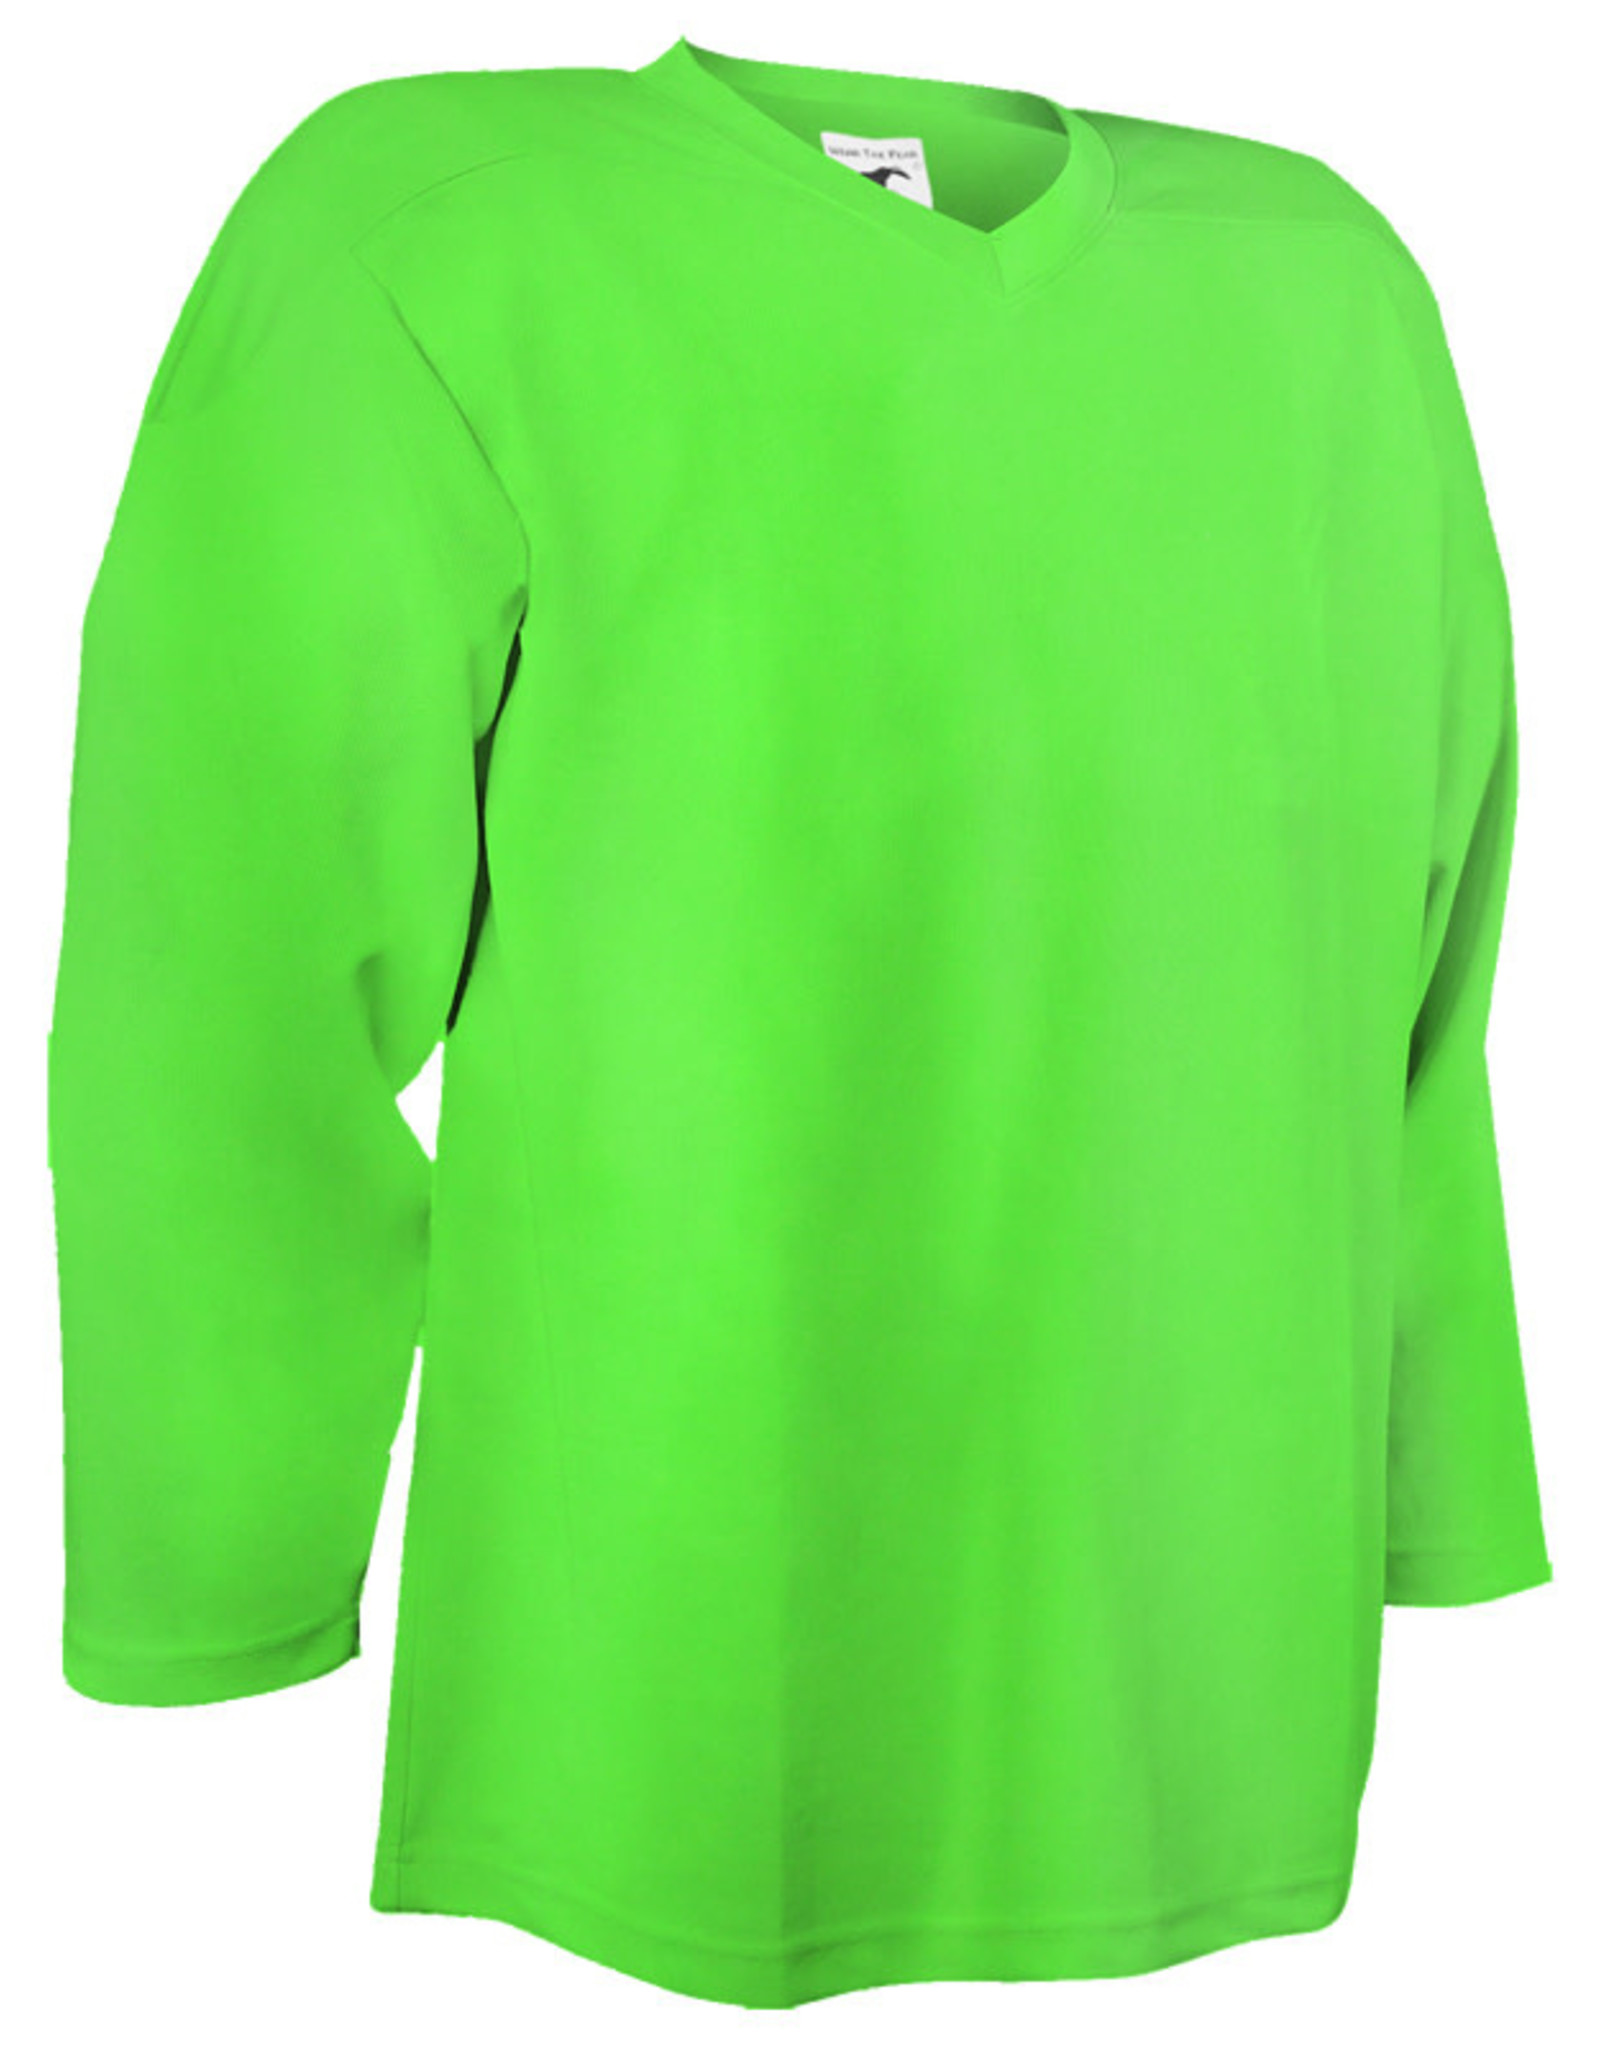 Pear Sox Pear Sox Air Mesh Practice Jersey (ADULT NEON GREEN)